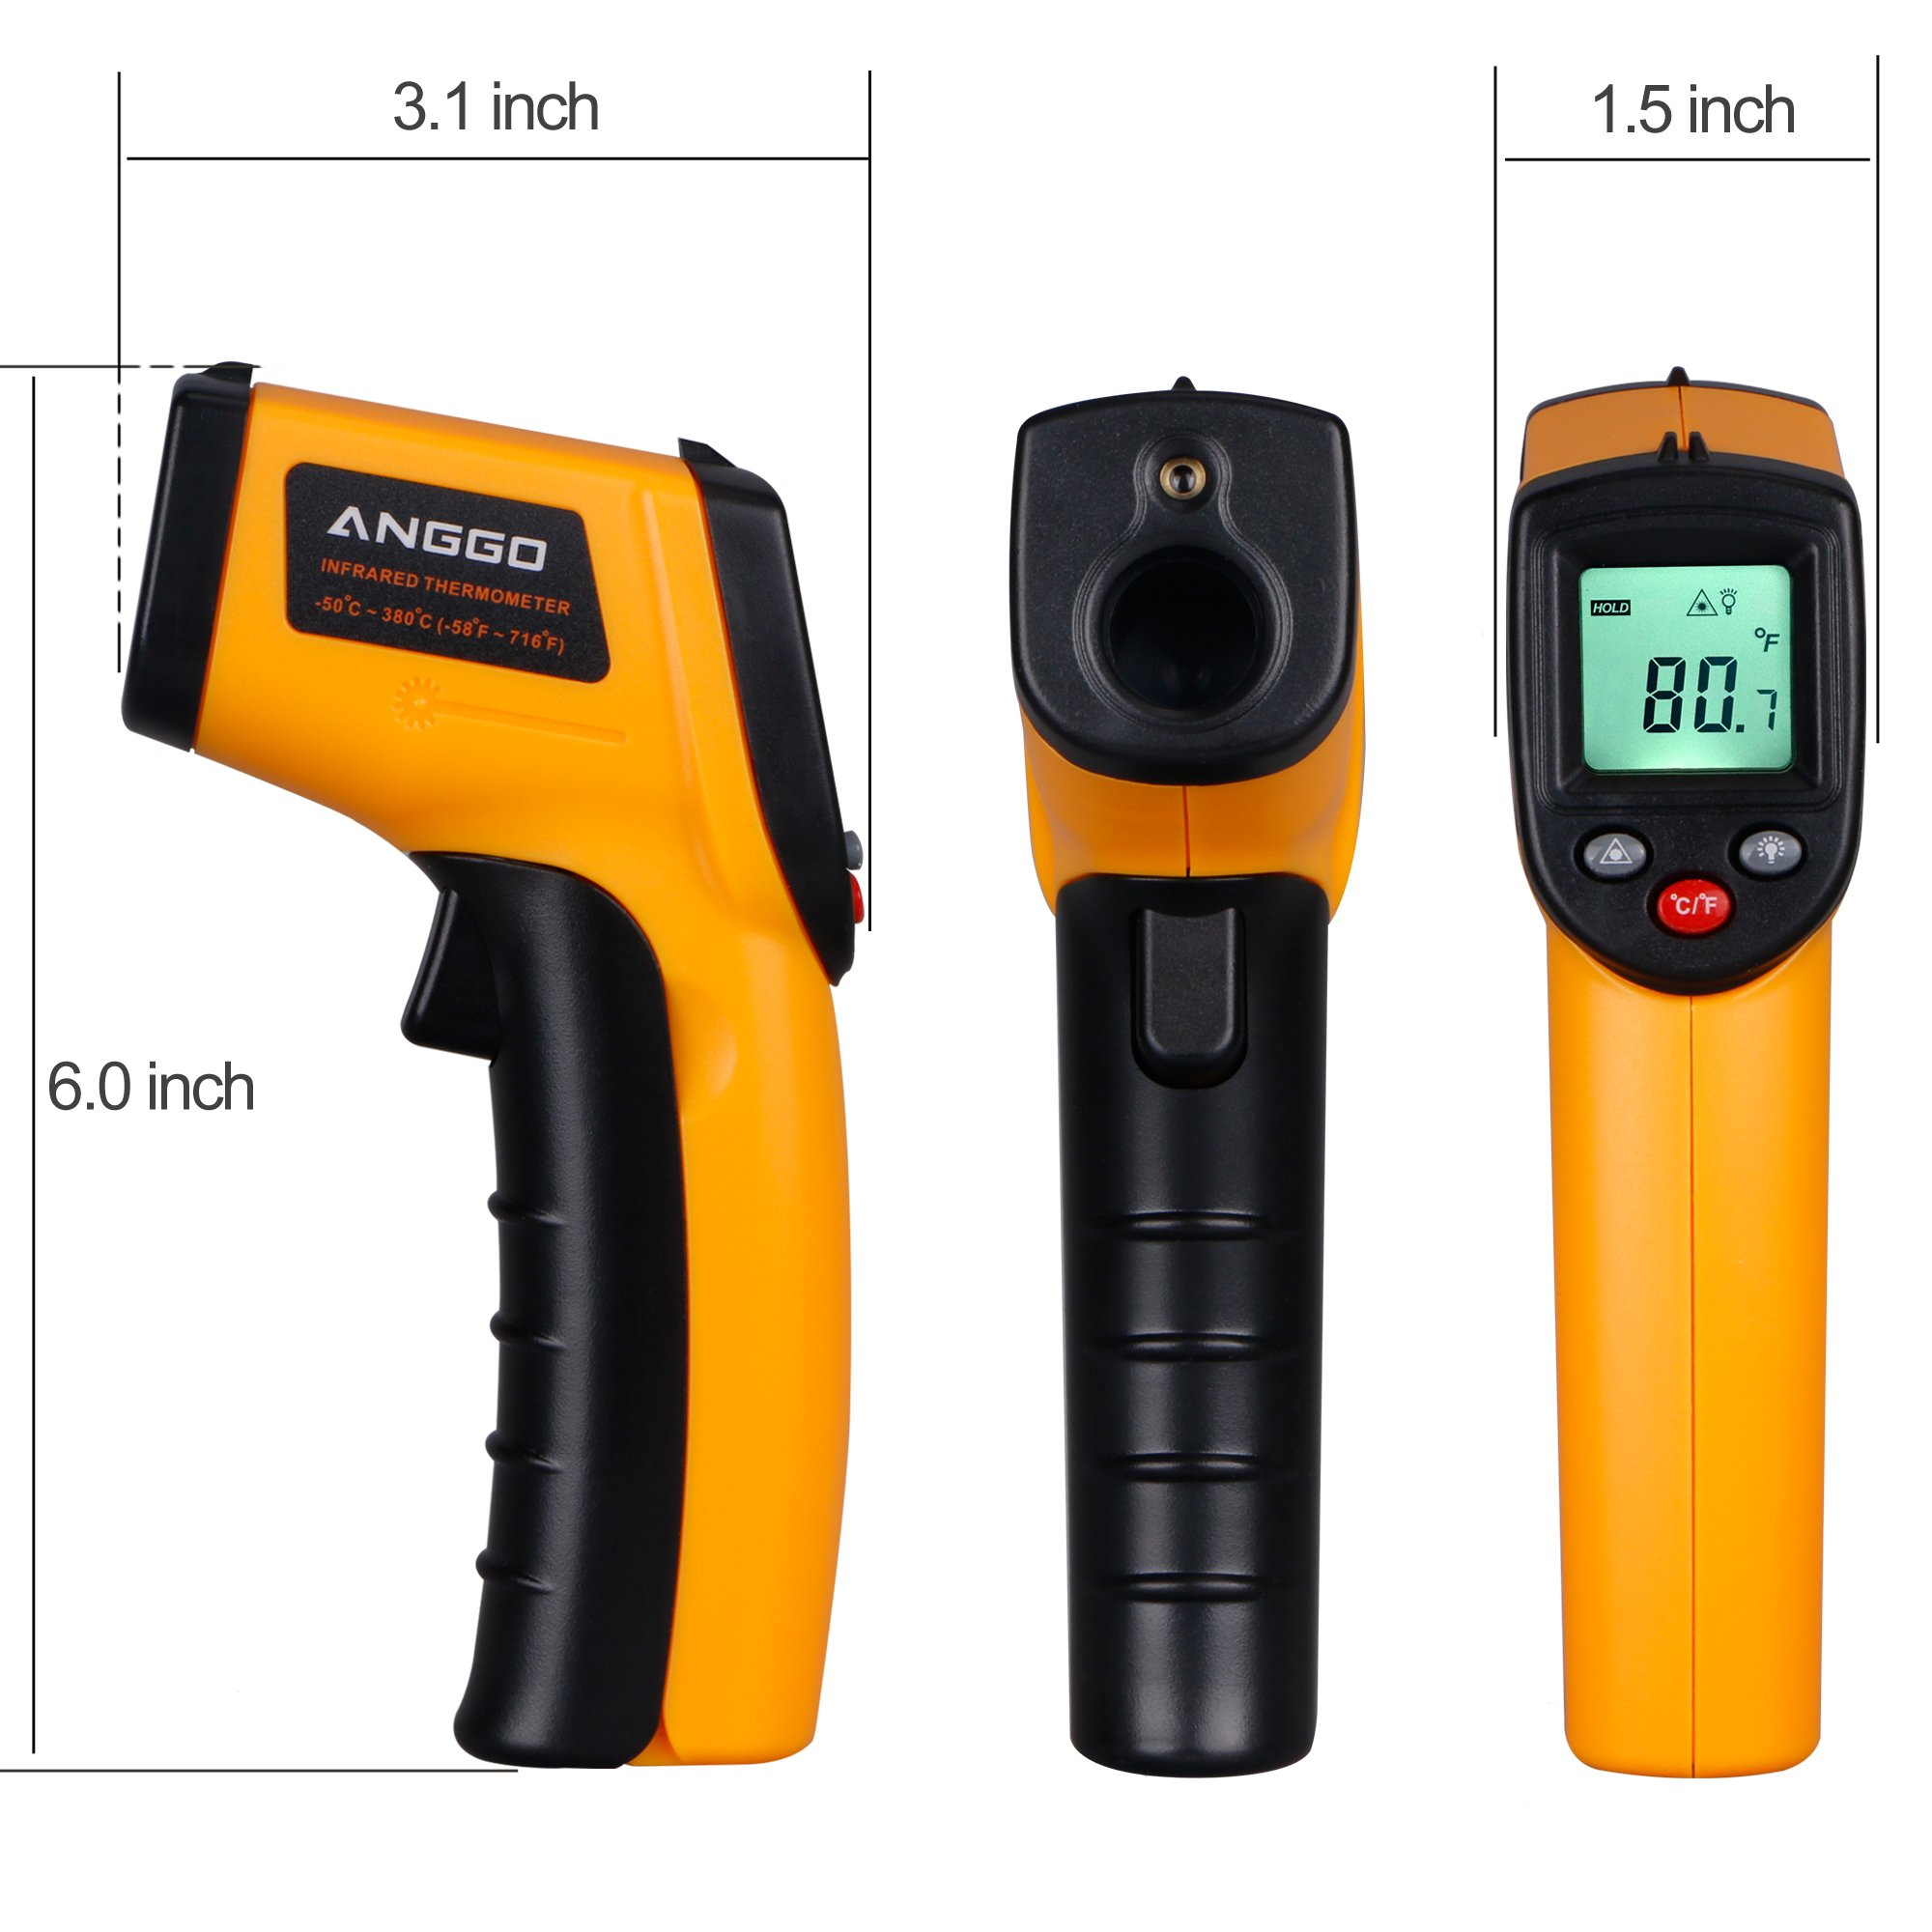 ANGGO IR Infrared Non-contact Digital Temperature Gun Thermometer with Laser for Precisely Aiming, Bright LCD Display with LED Backlight (-58 °F to 716°F) by ANGGO (Image #5)